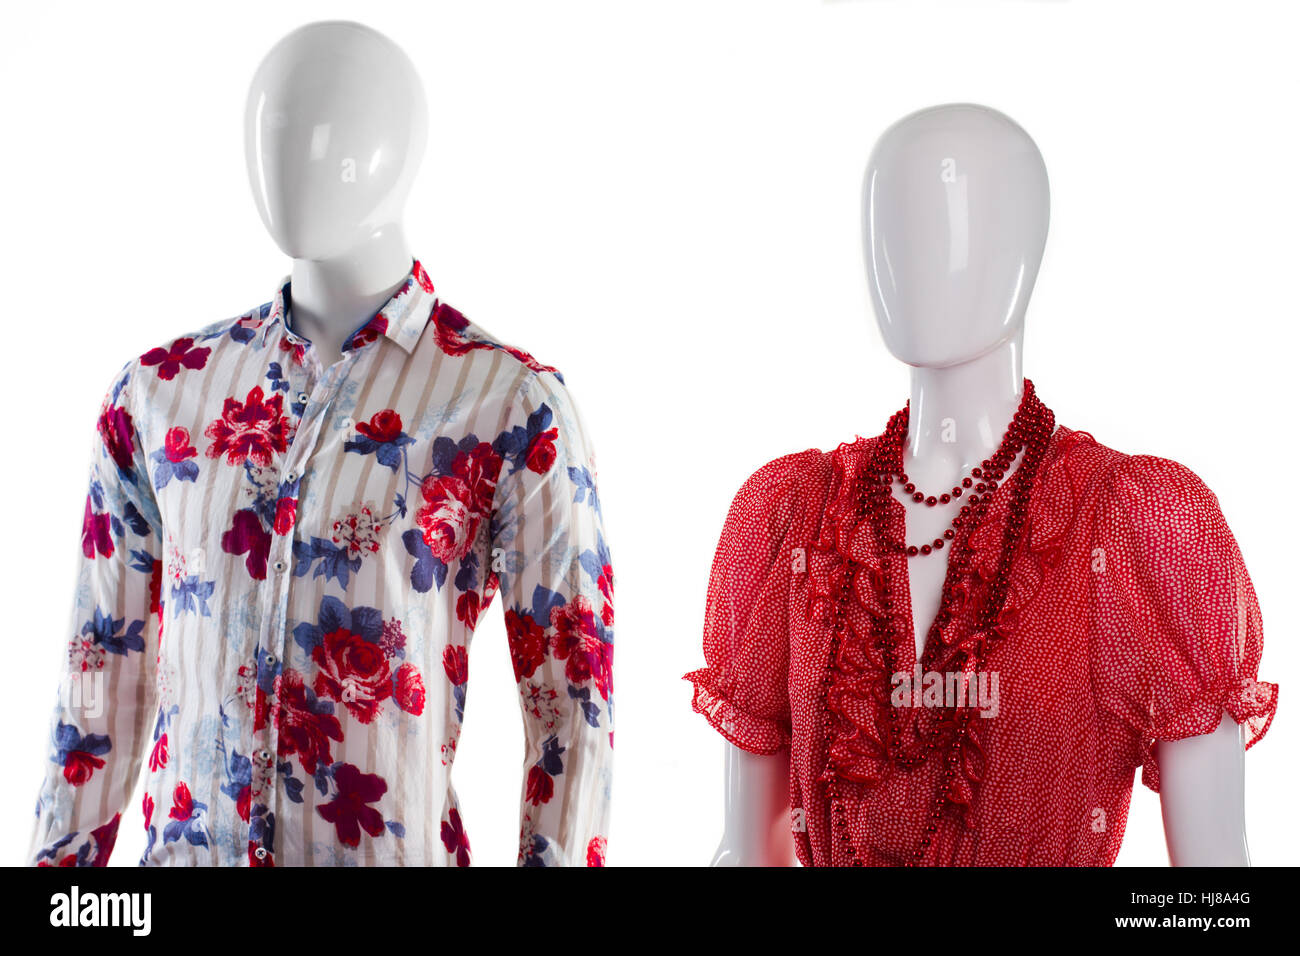 6b8166f7b48e Shirt and sarafan on mannequins Stock Photo  131719968 - Alamy